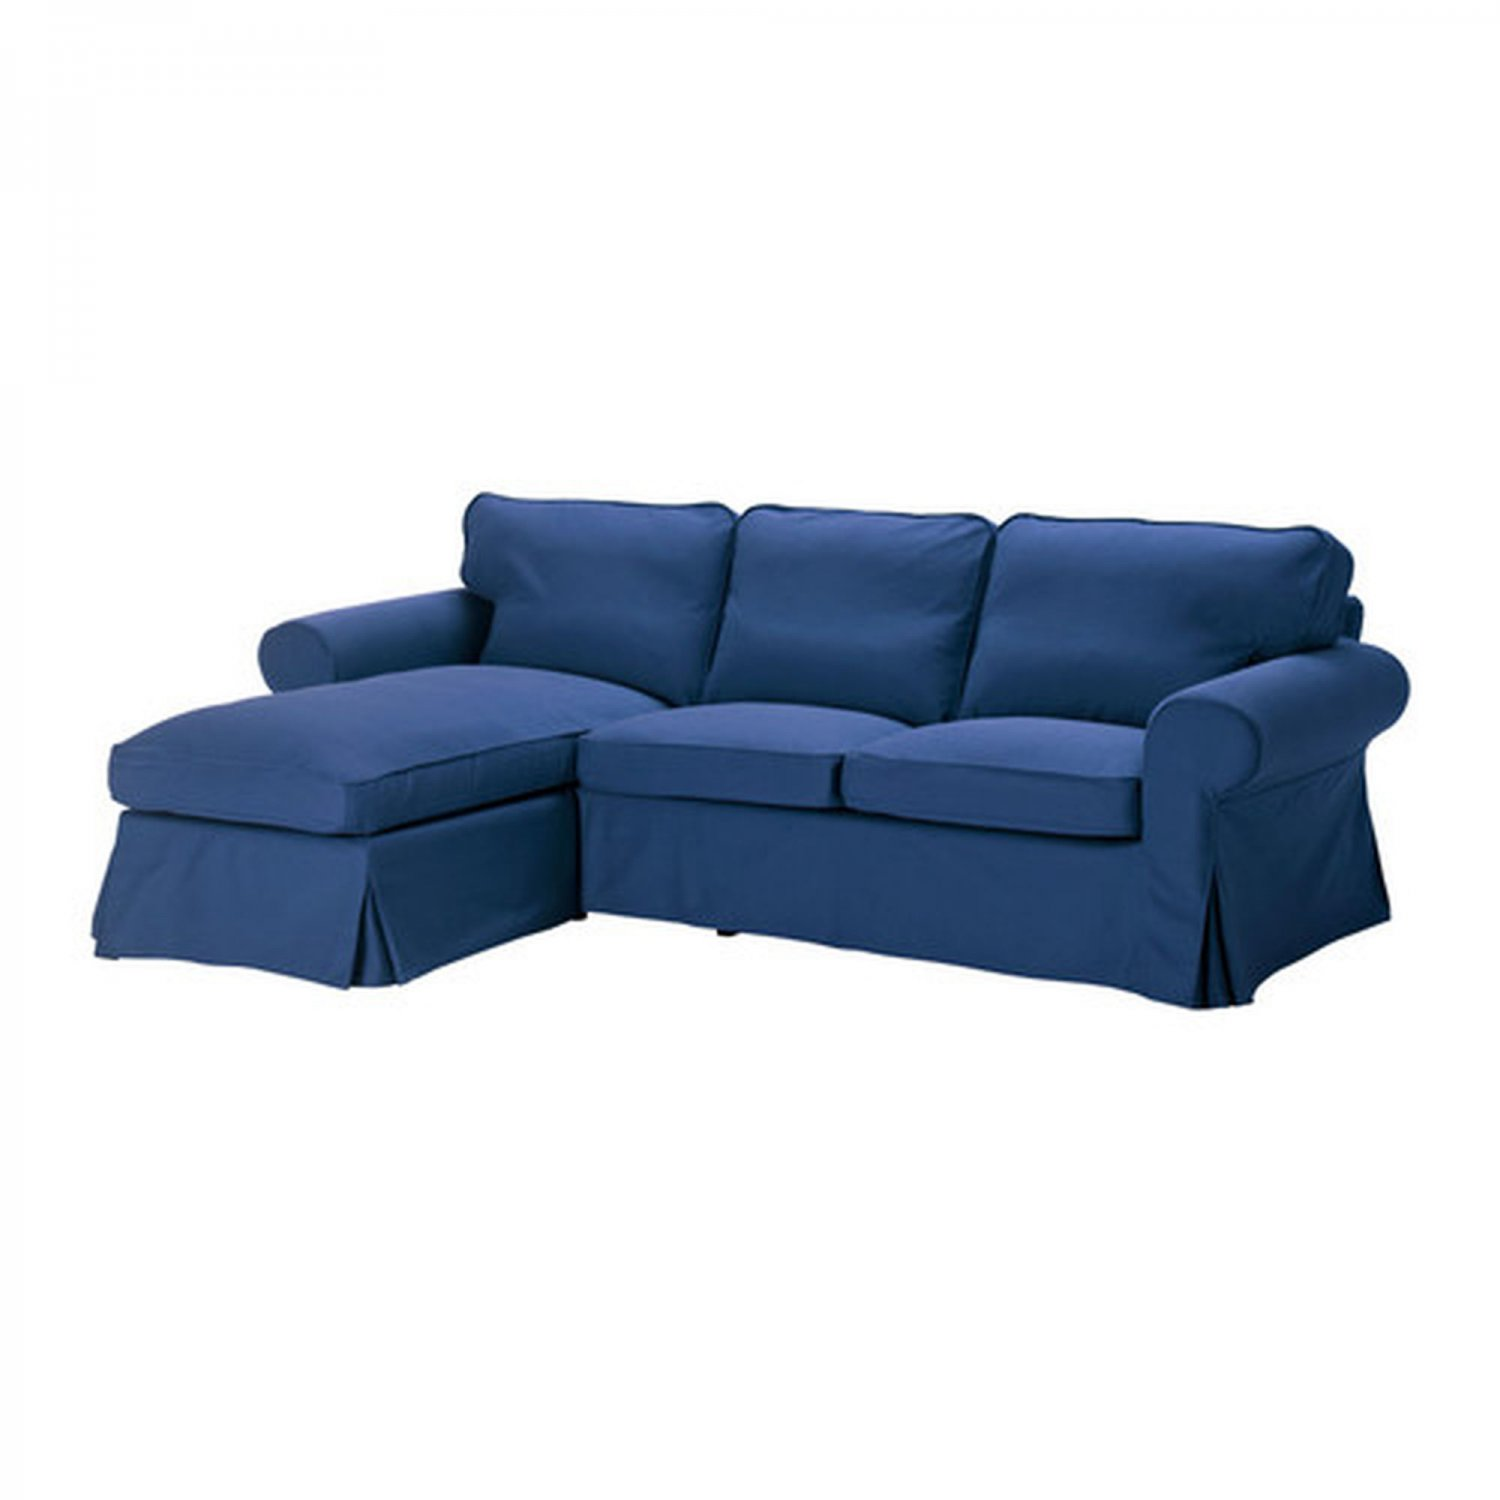 Ikea ektorp loveseat with chaise lounge cover slipcover for Chaise and sofa